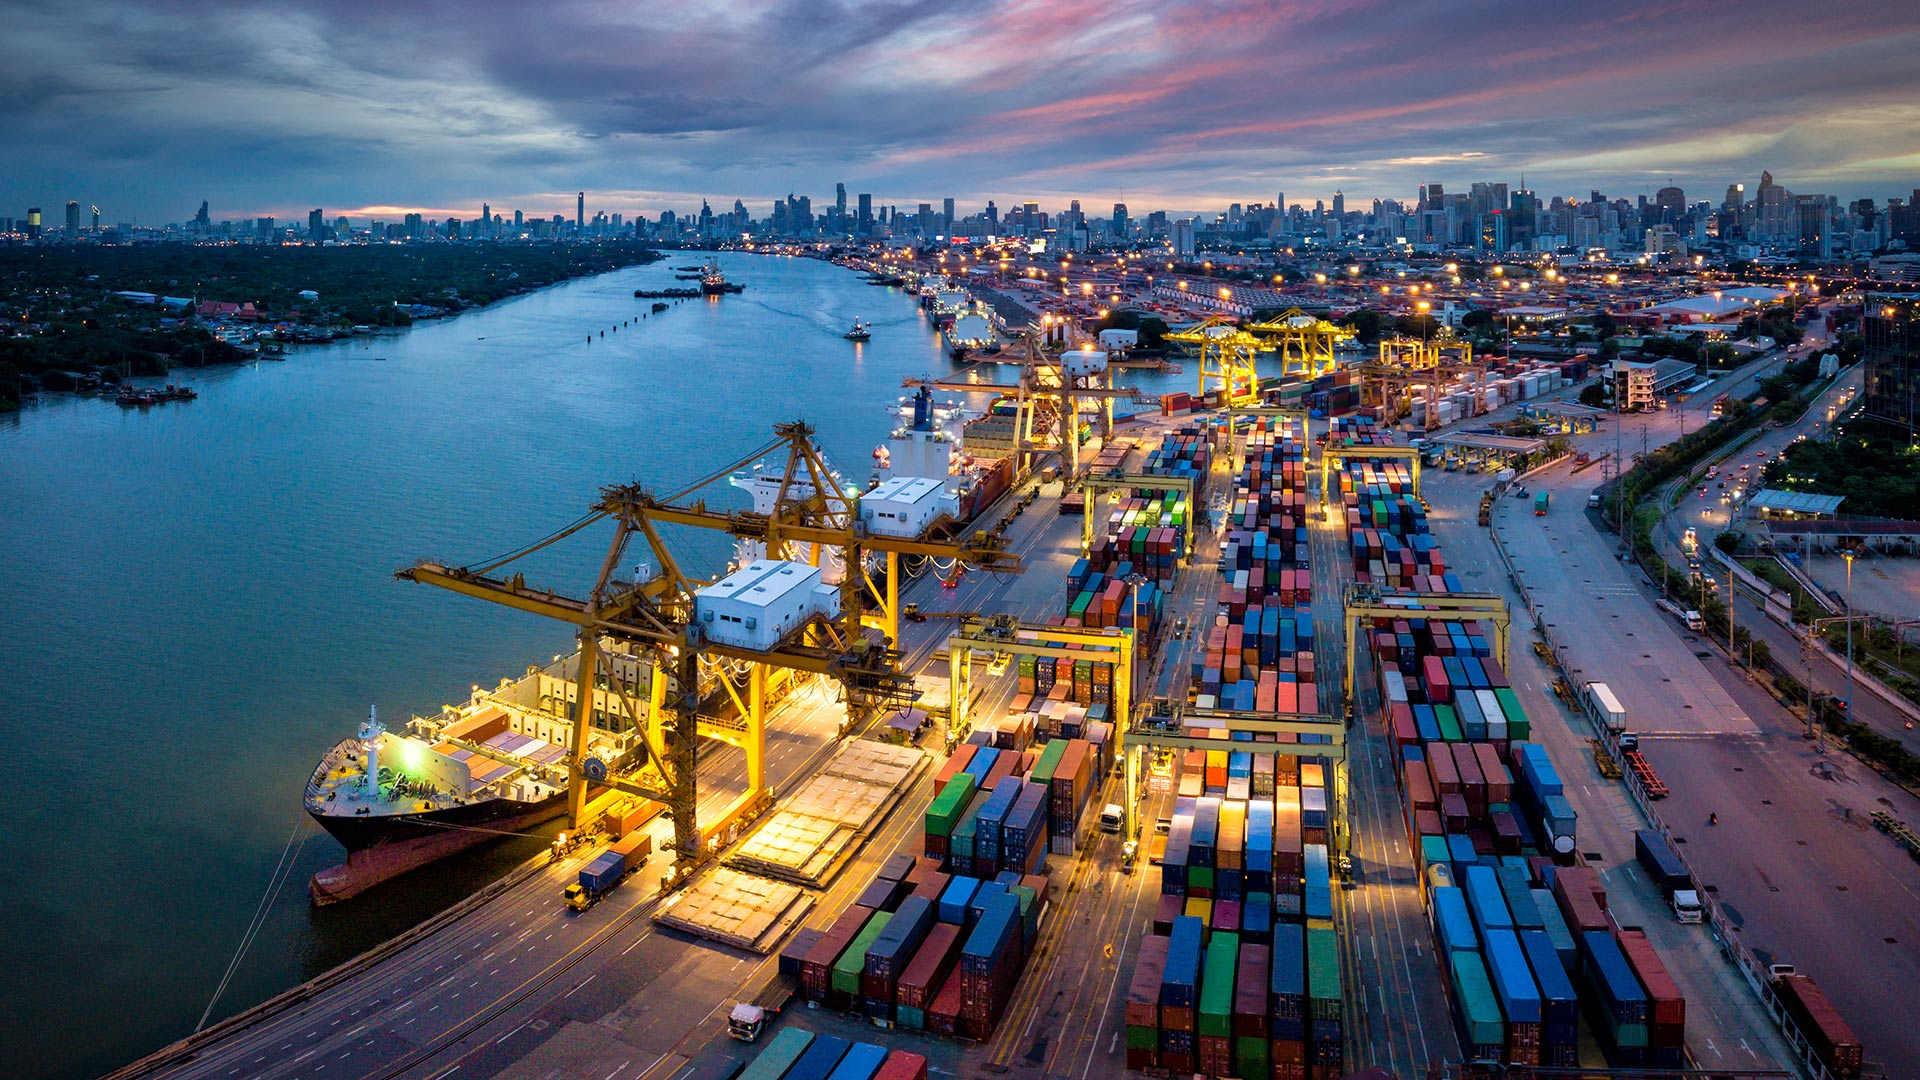 Shipping channel and containers